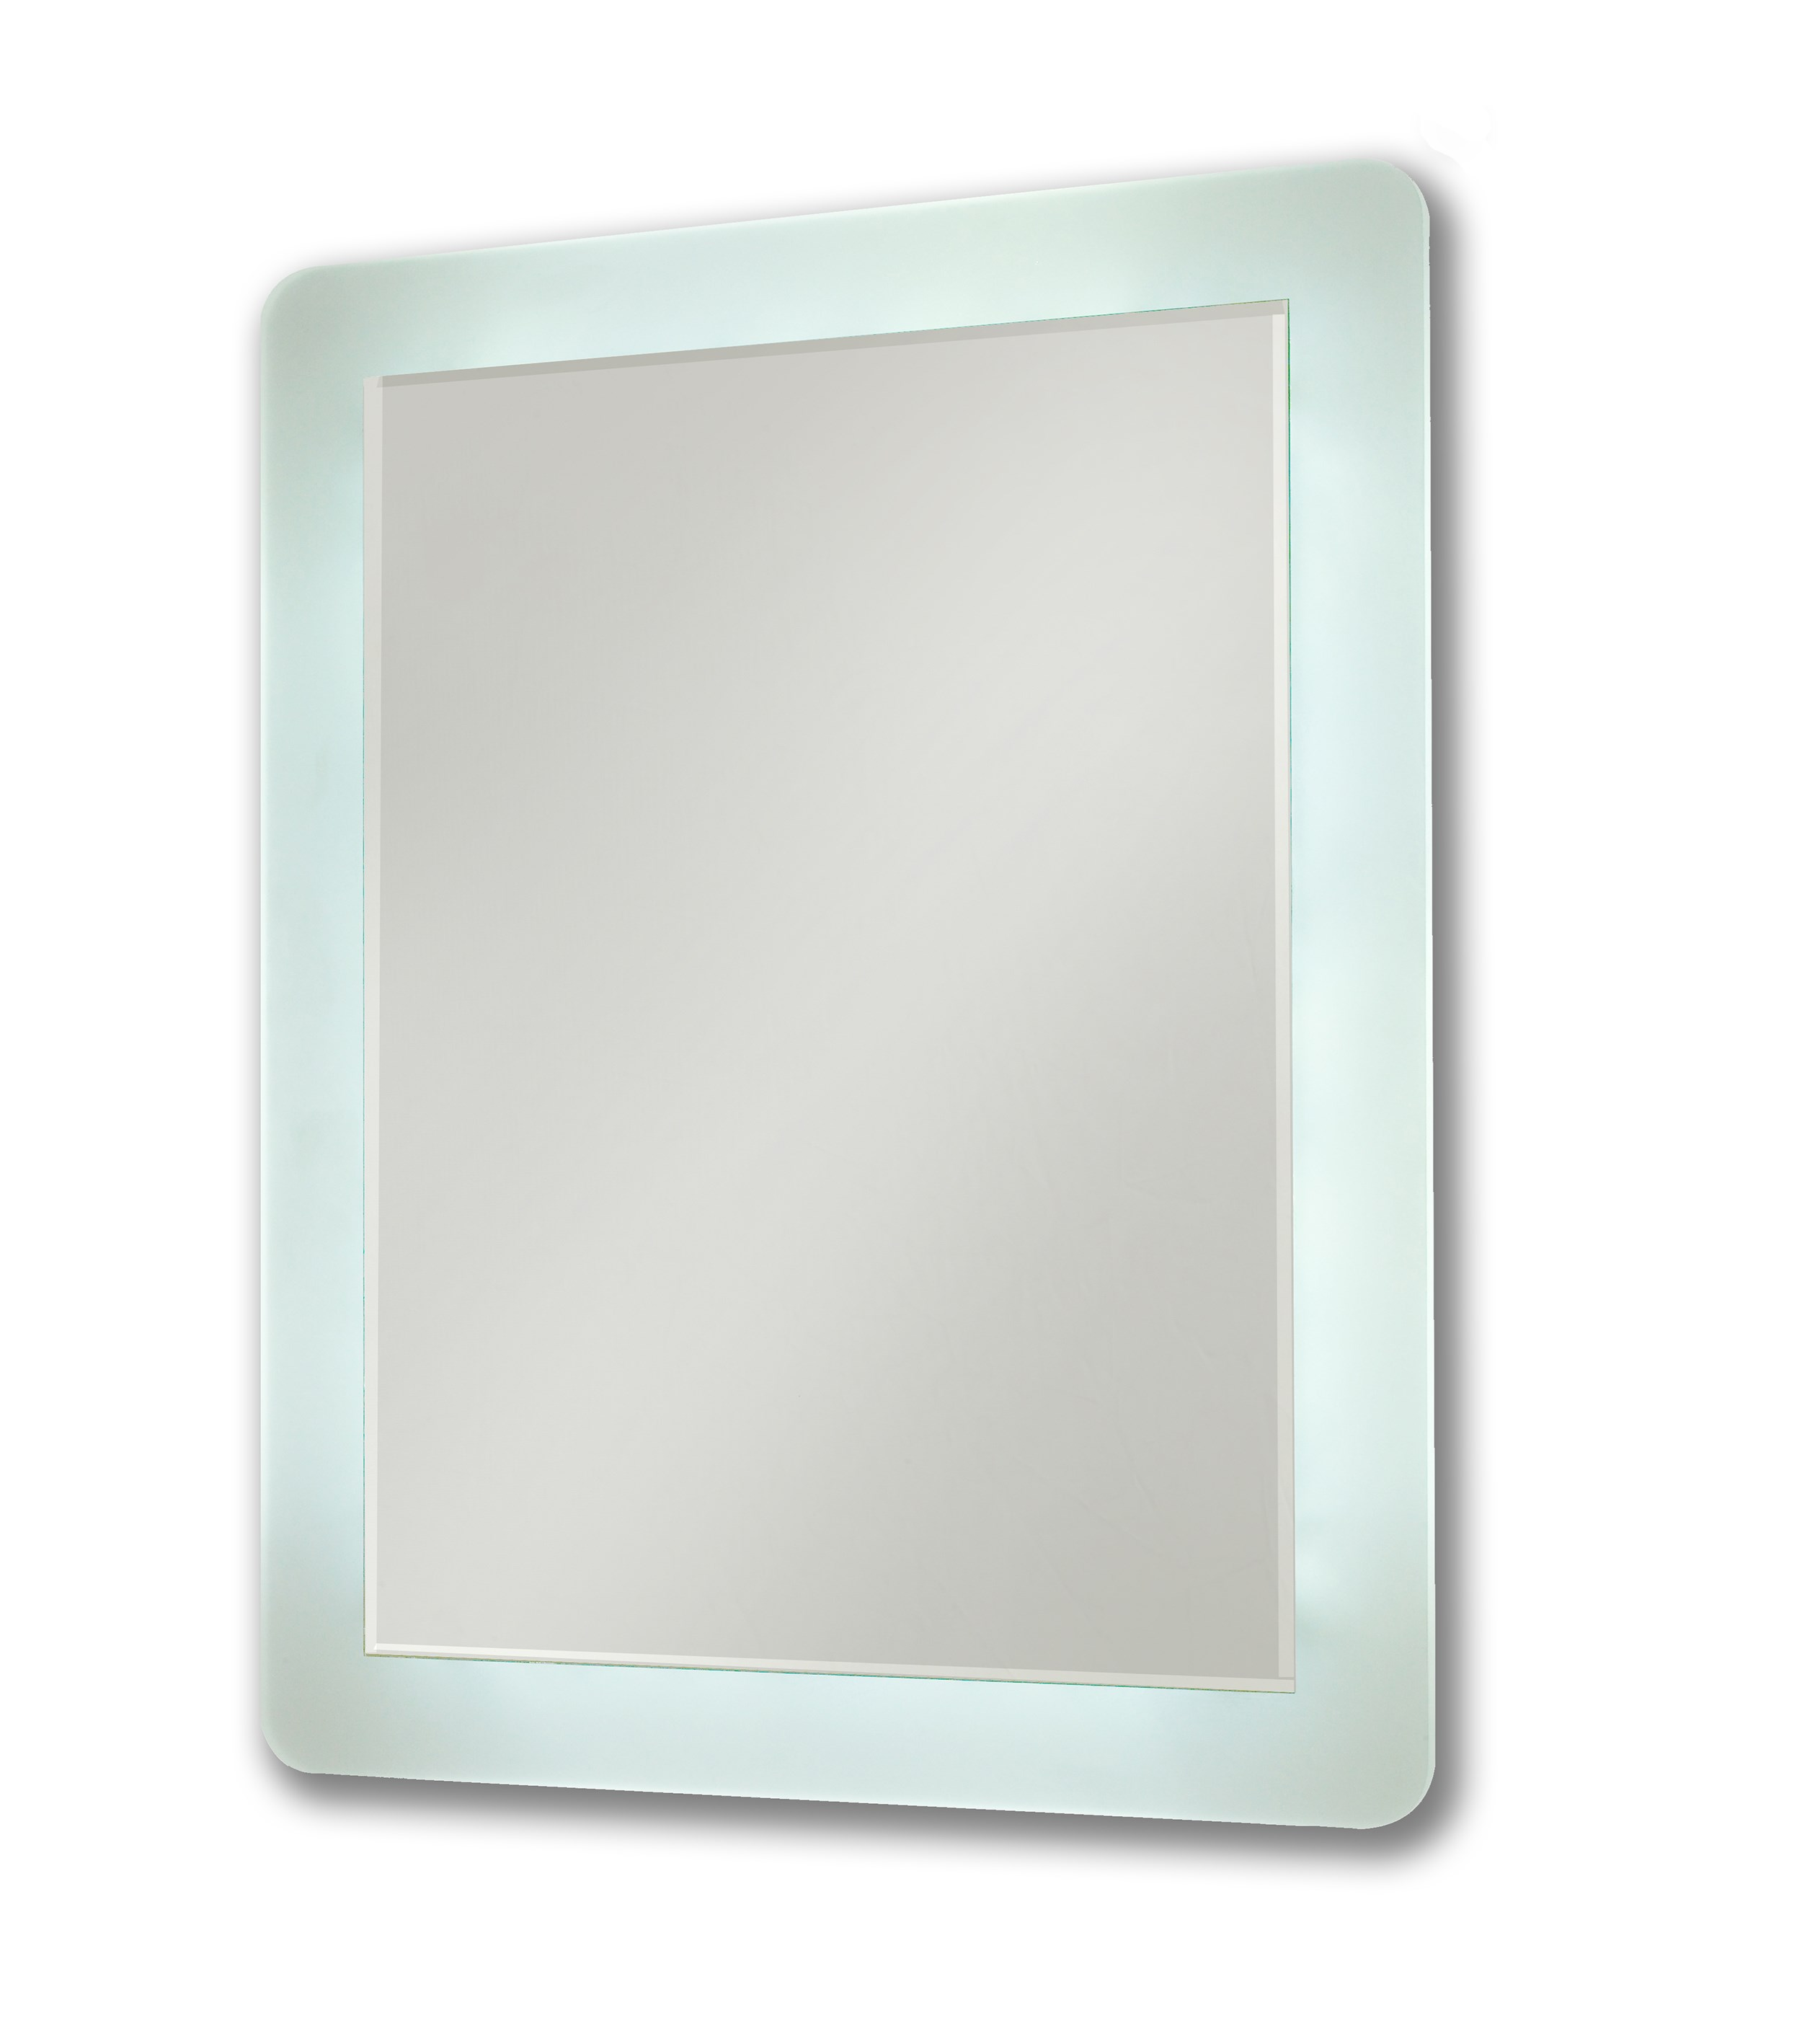 Sycamore  Illuminated Halo Mirror with Demister - 39 x 50cm